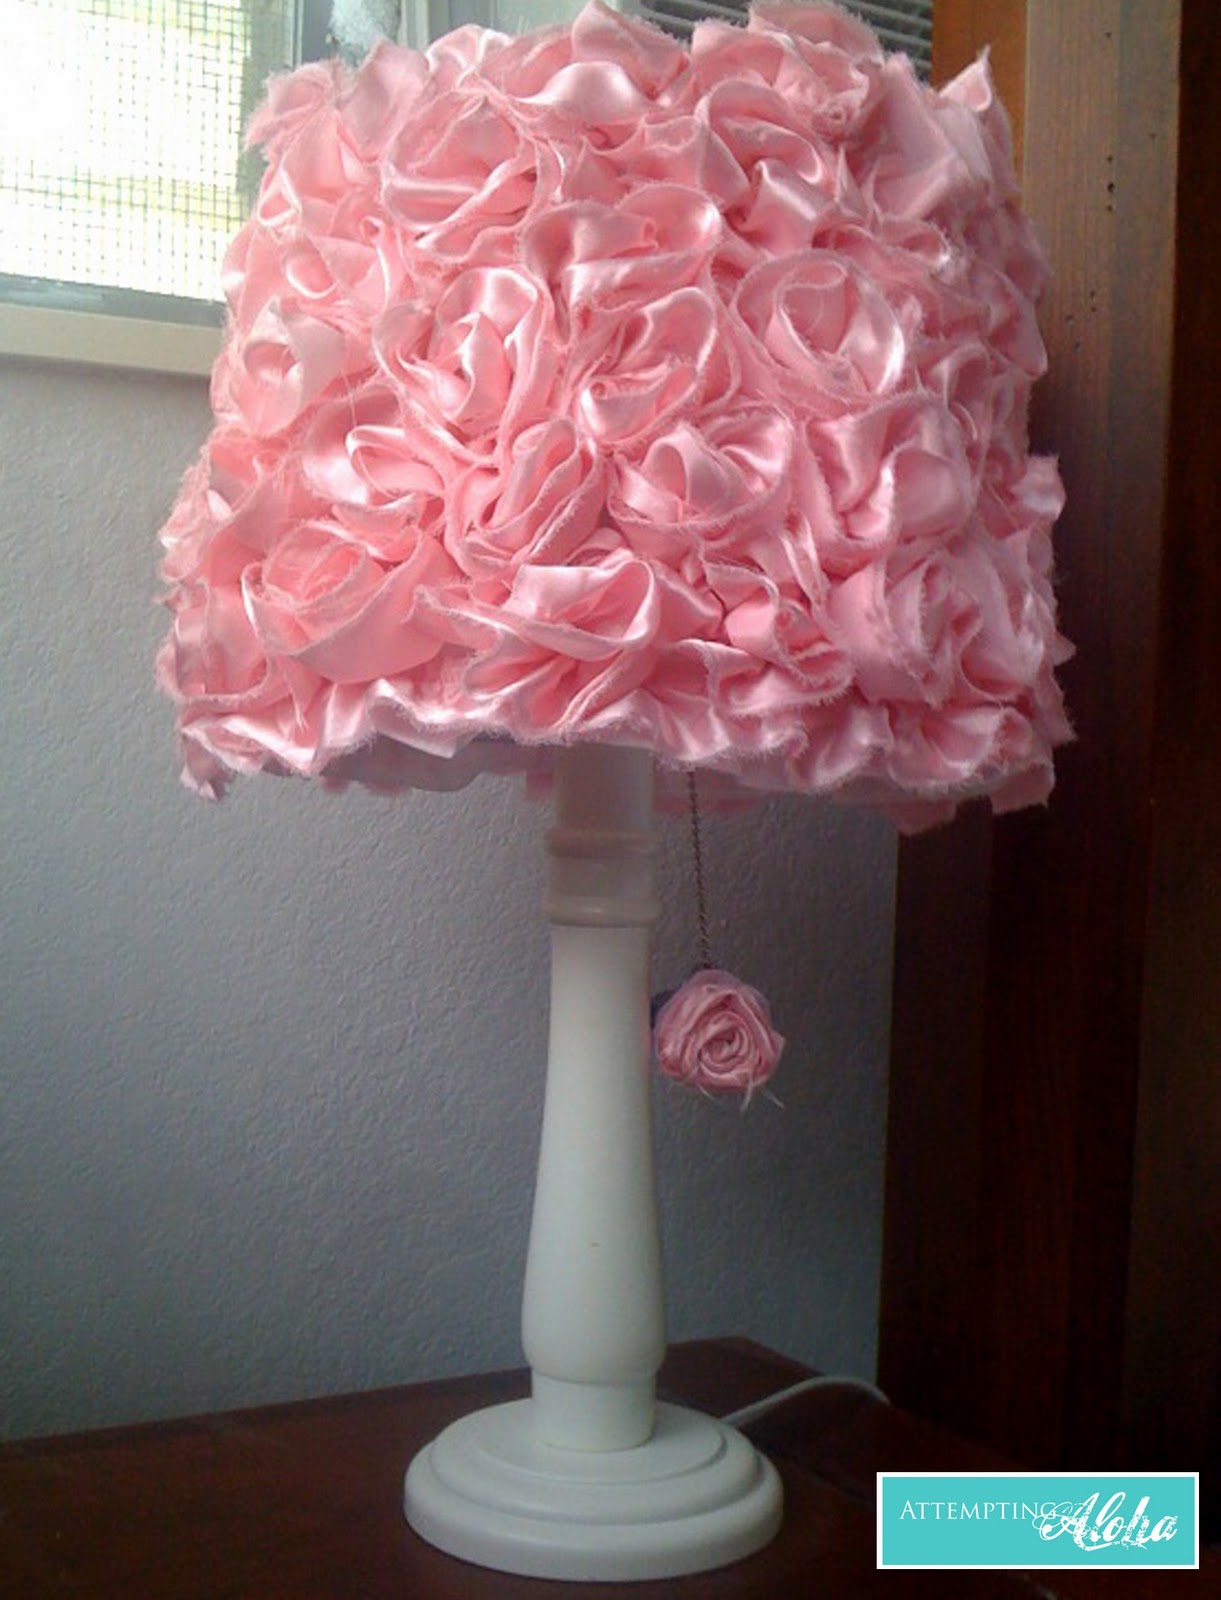 Attempting aloha pottery barn kids lamp knock off pottery barn kids lamp knock off aloadofball Image collections